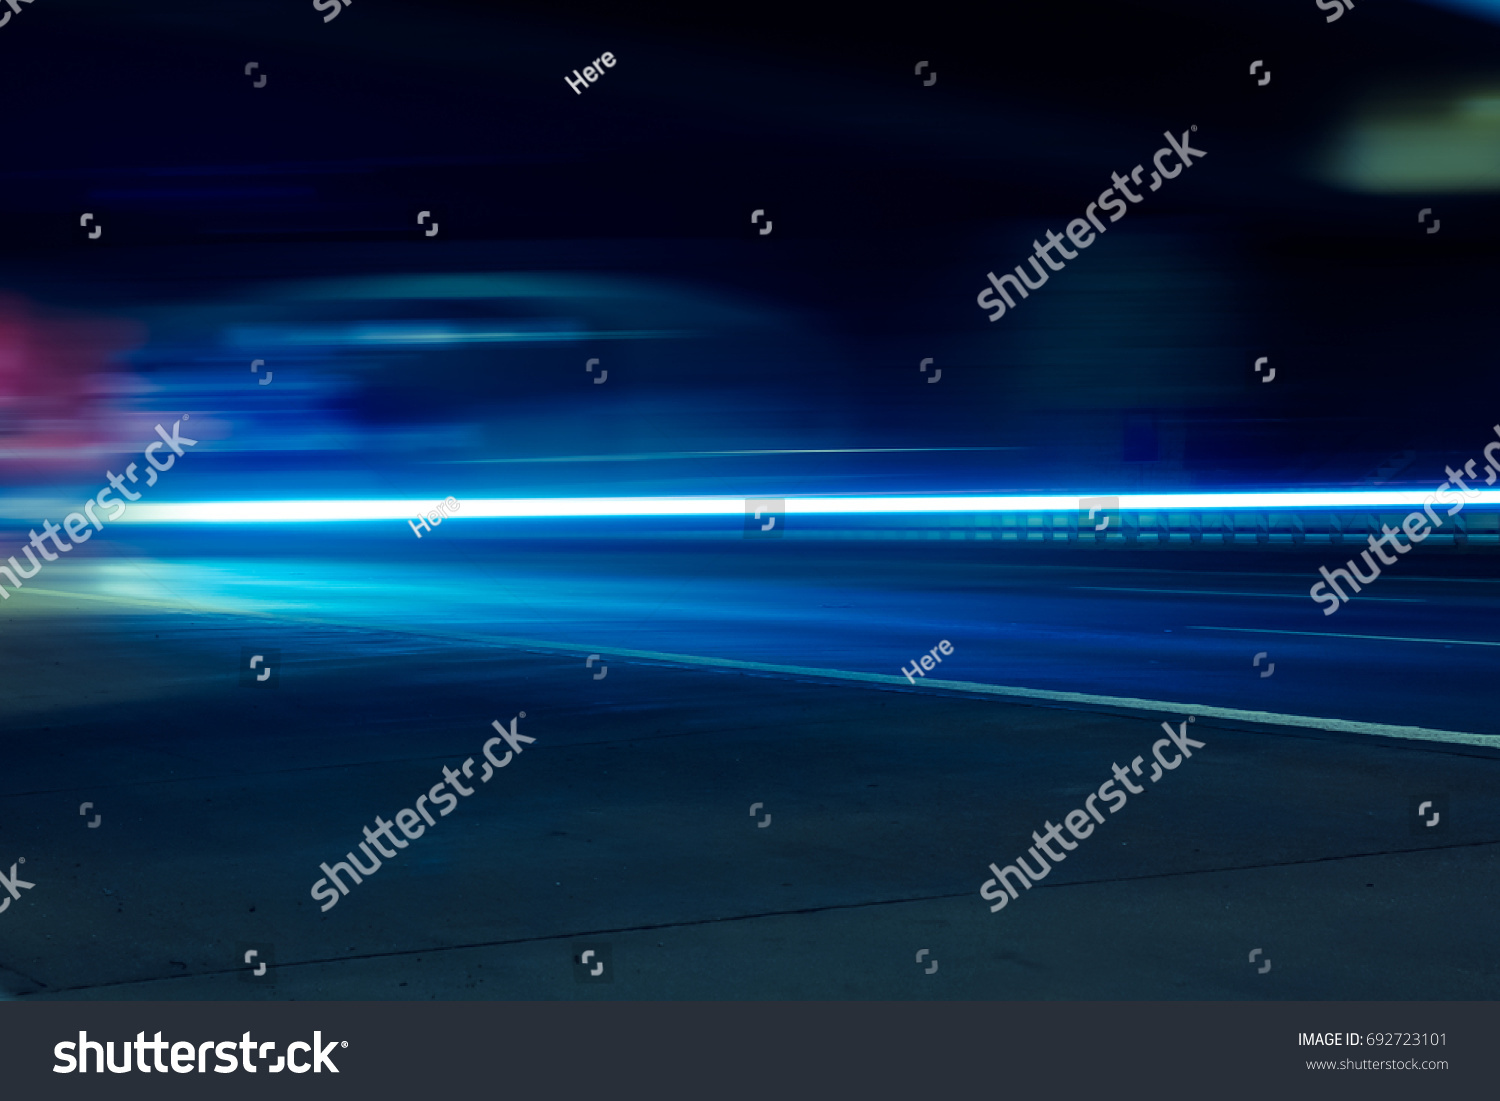 SPEED LIGHT BACKGROUND #692723101